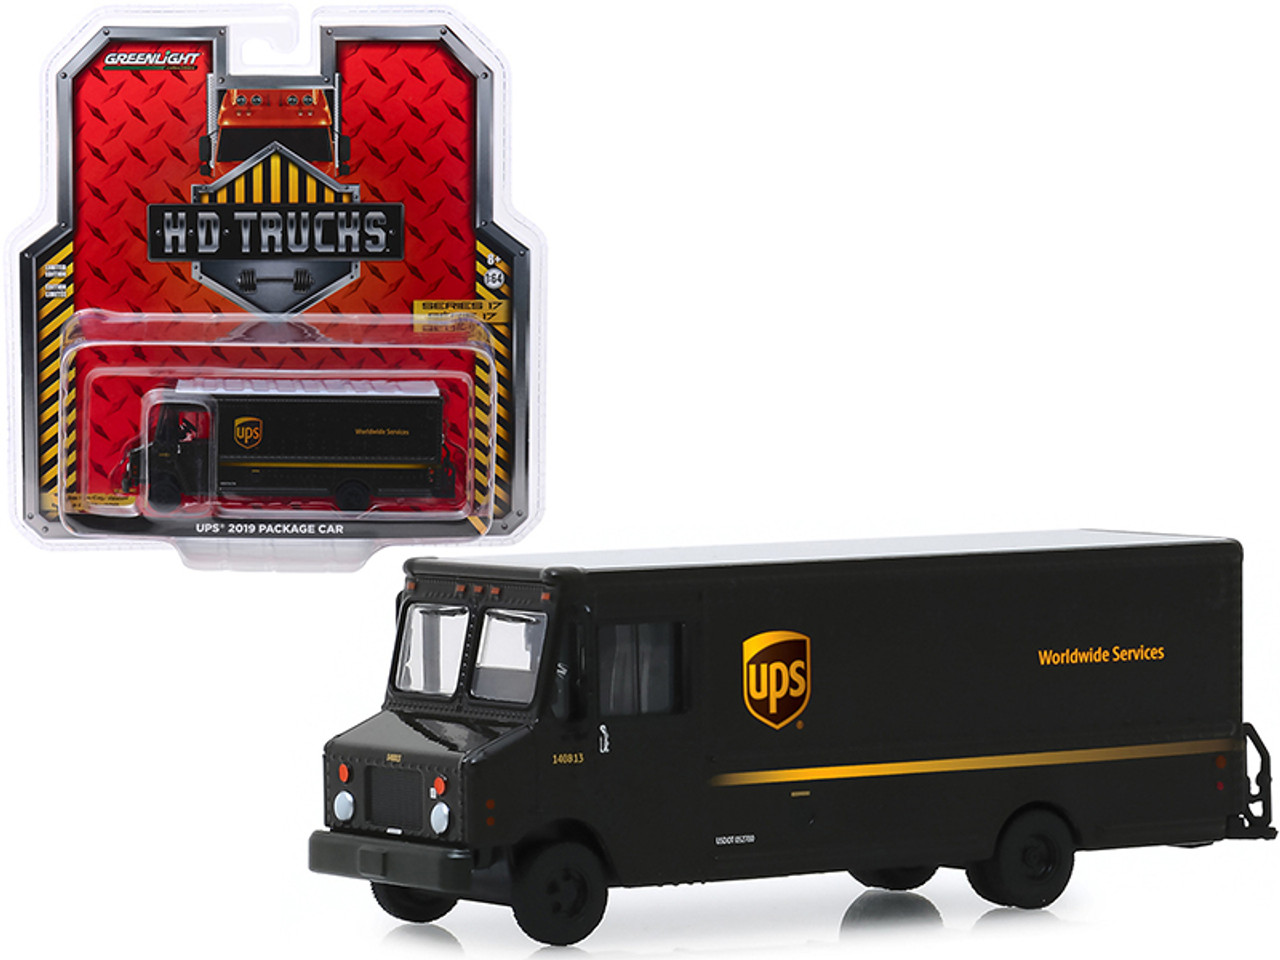 """2019 Package Car """"UPS"""" (United Parcel Service) """"H.D. Trucks"""" Series 17 1/64 Diecast Model by Greenlight"""